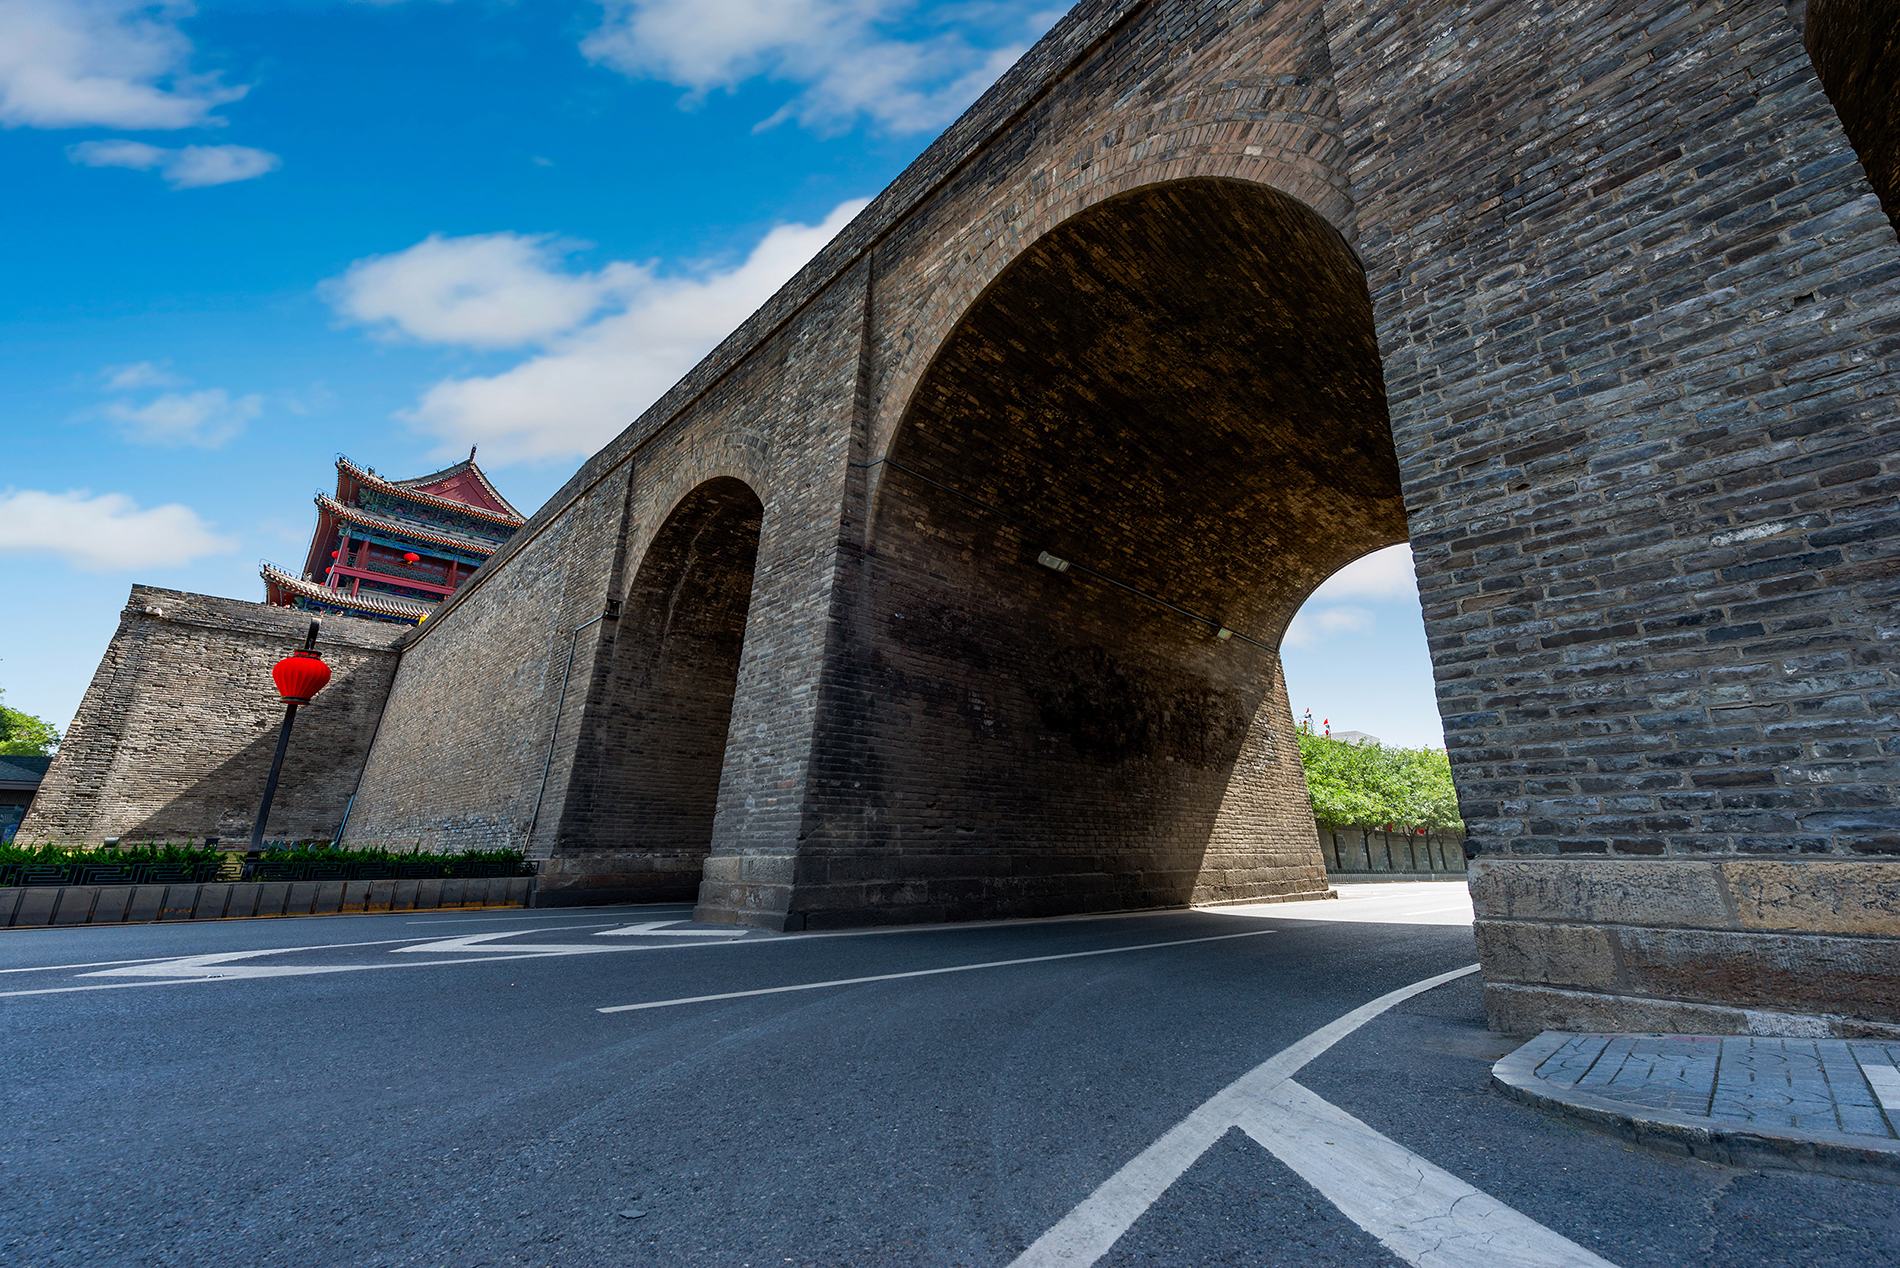 Xian city wall with arched gates 53402